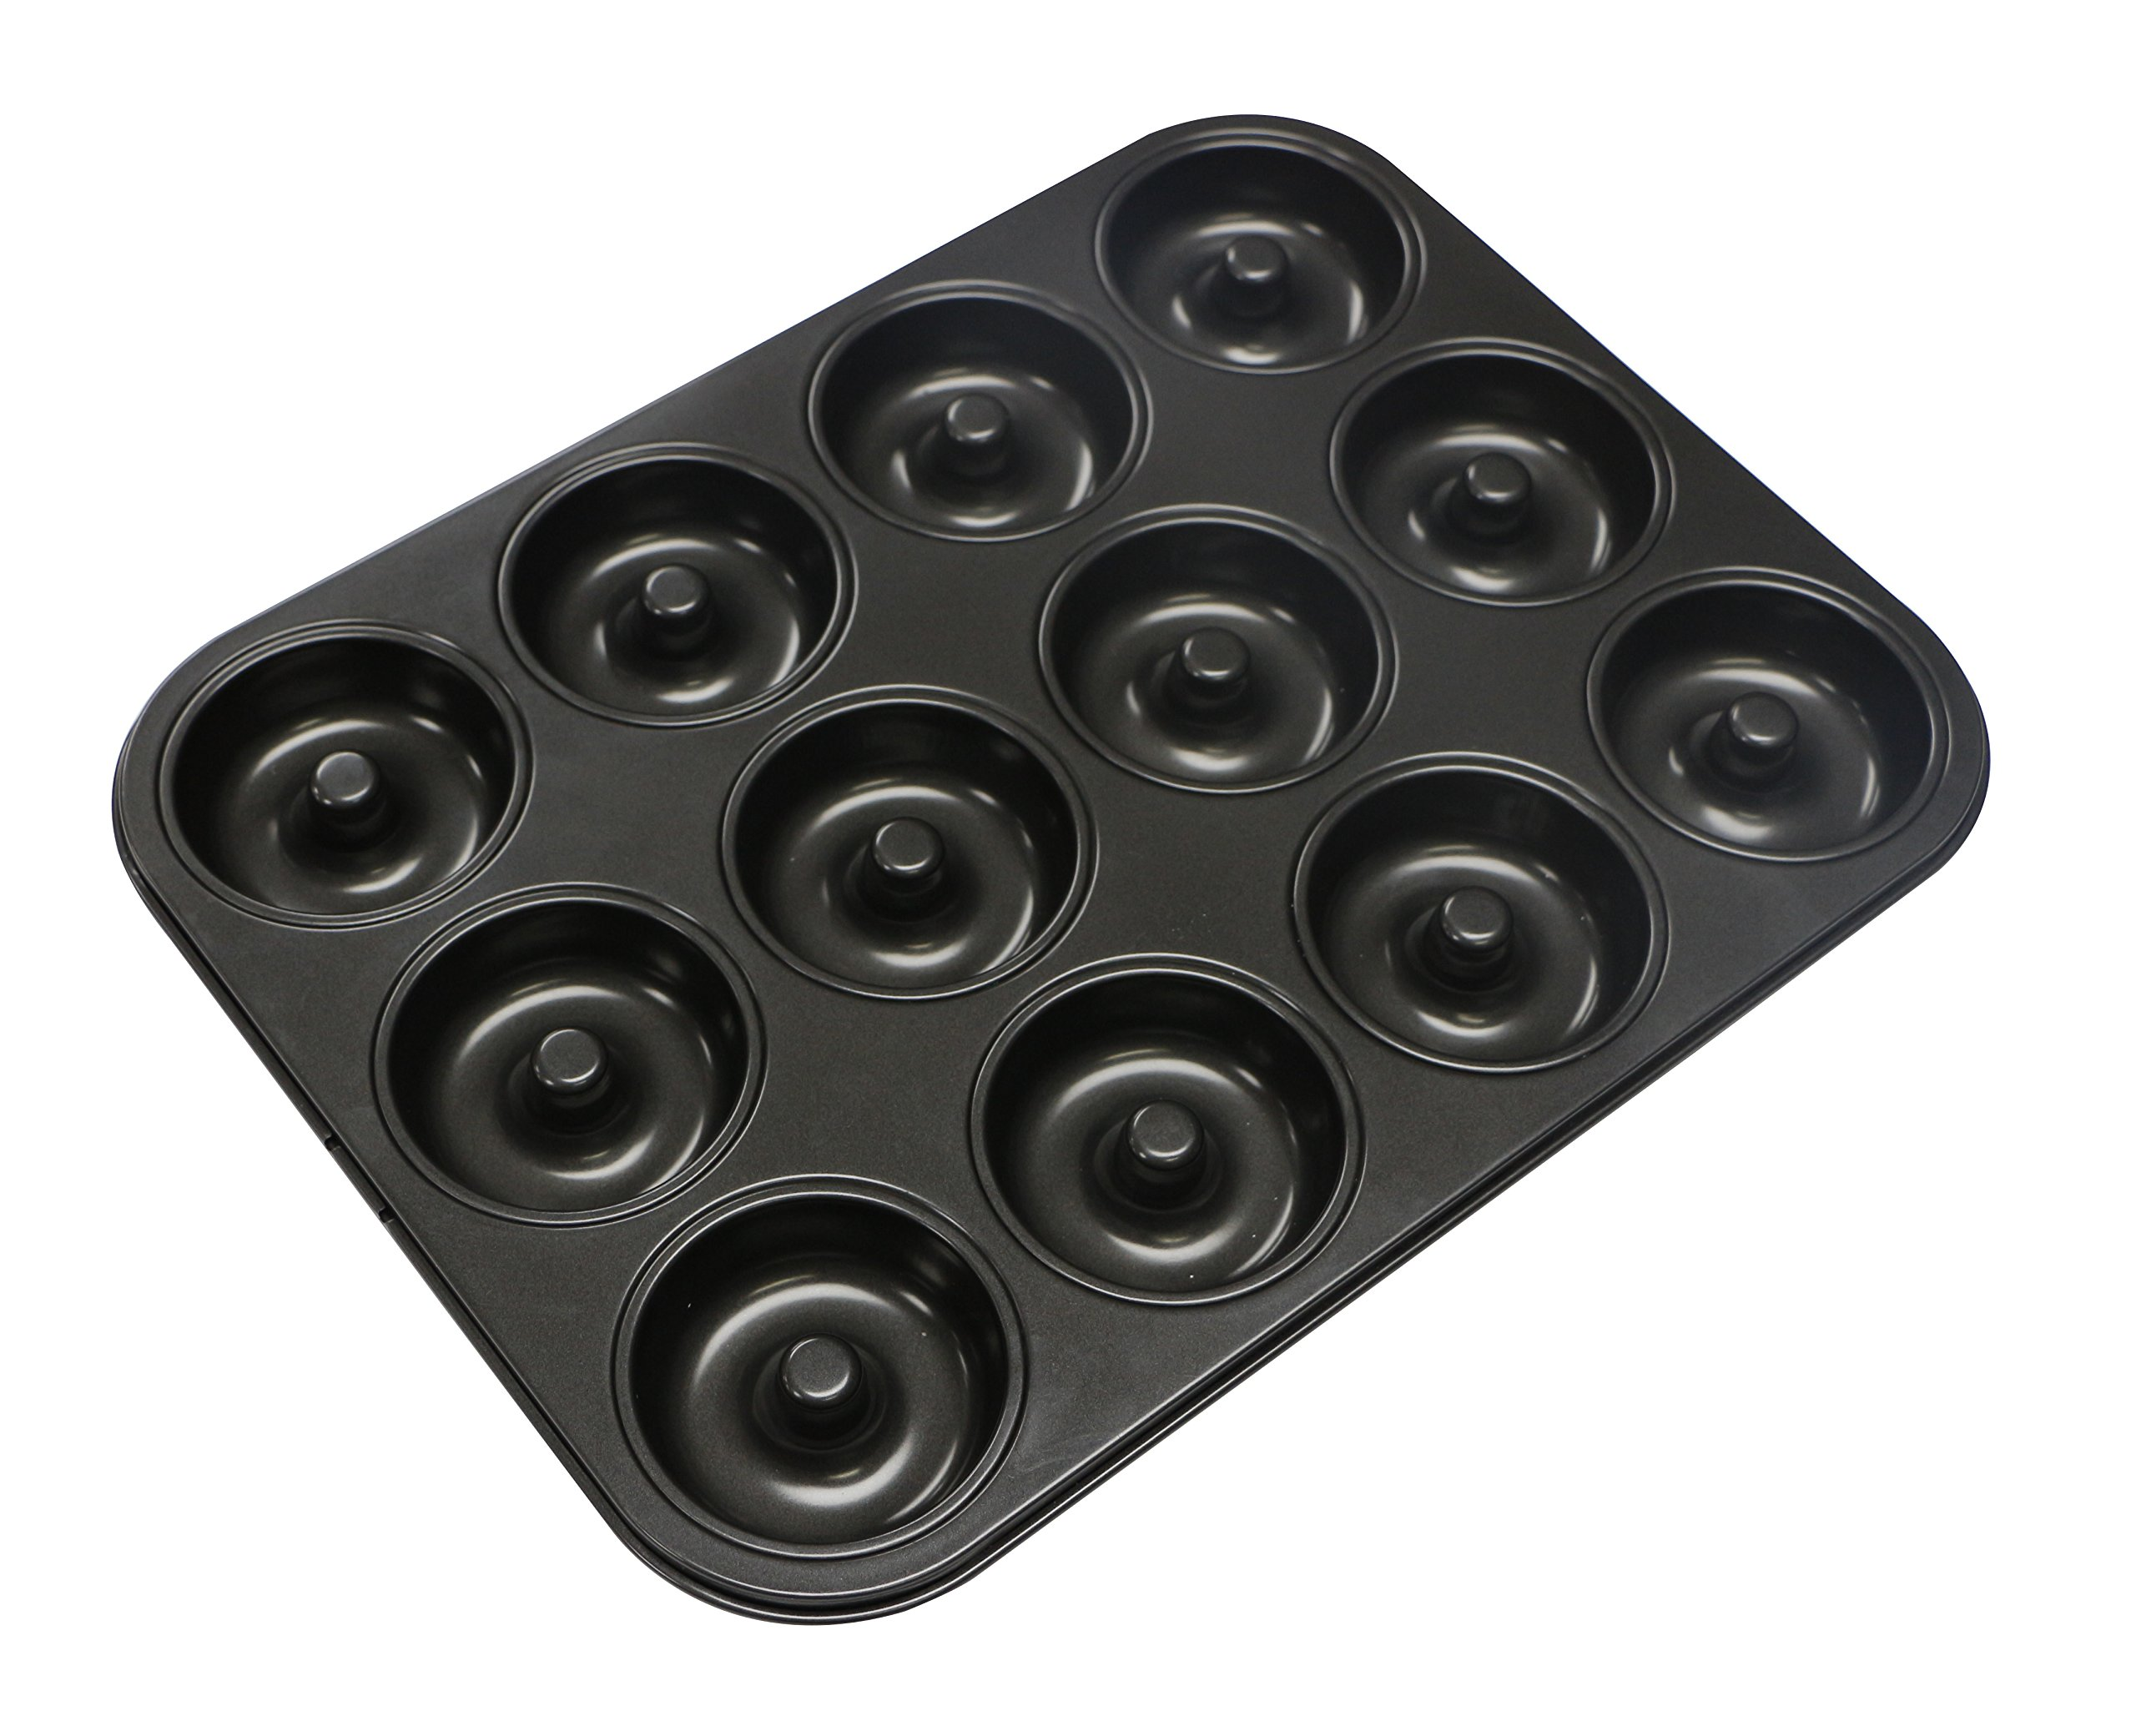 Webake Extra Thick Donut Pan 12-cavity 2.8'' Non-stick Medium Size (Donut pan)